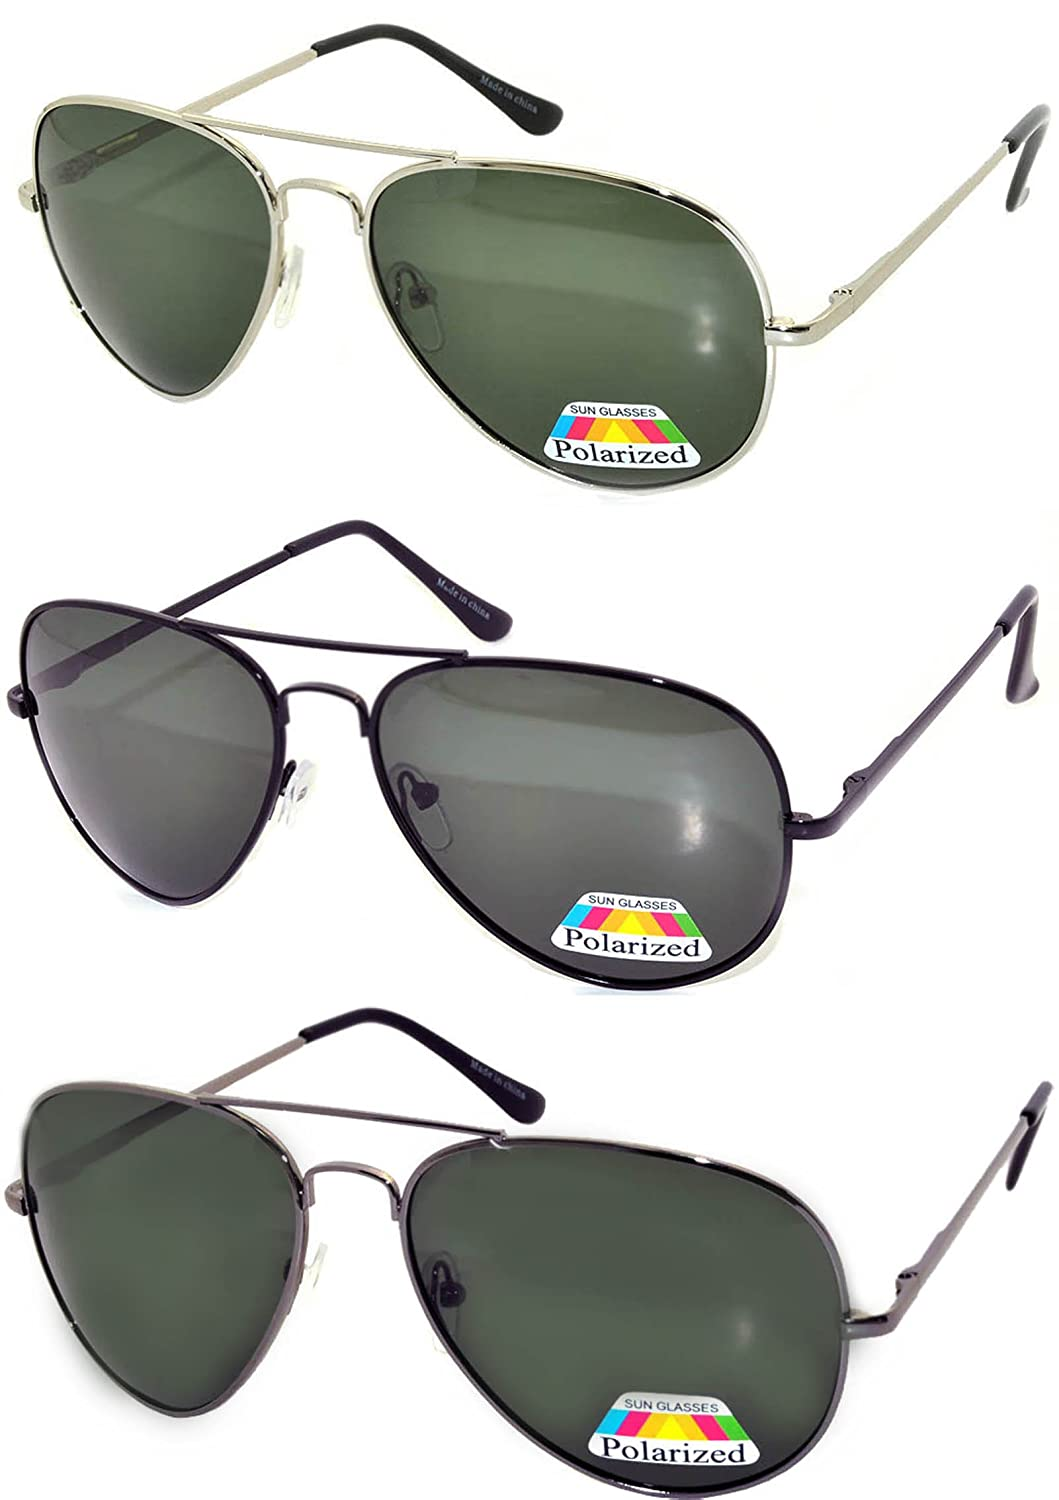 dd8d21388ef Amazon.com  Set of 3 Classic Aviator Style Sunglasses Gold Metal Frame  Polarized Brown Lens  Clothing